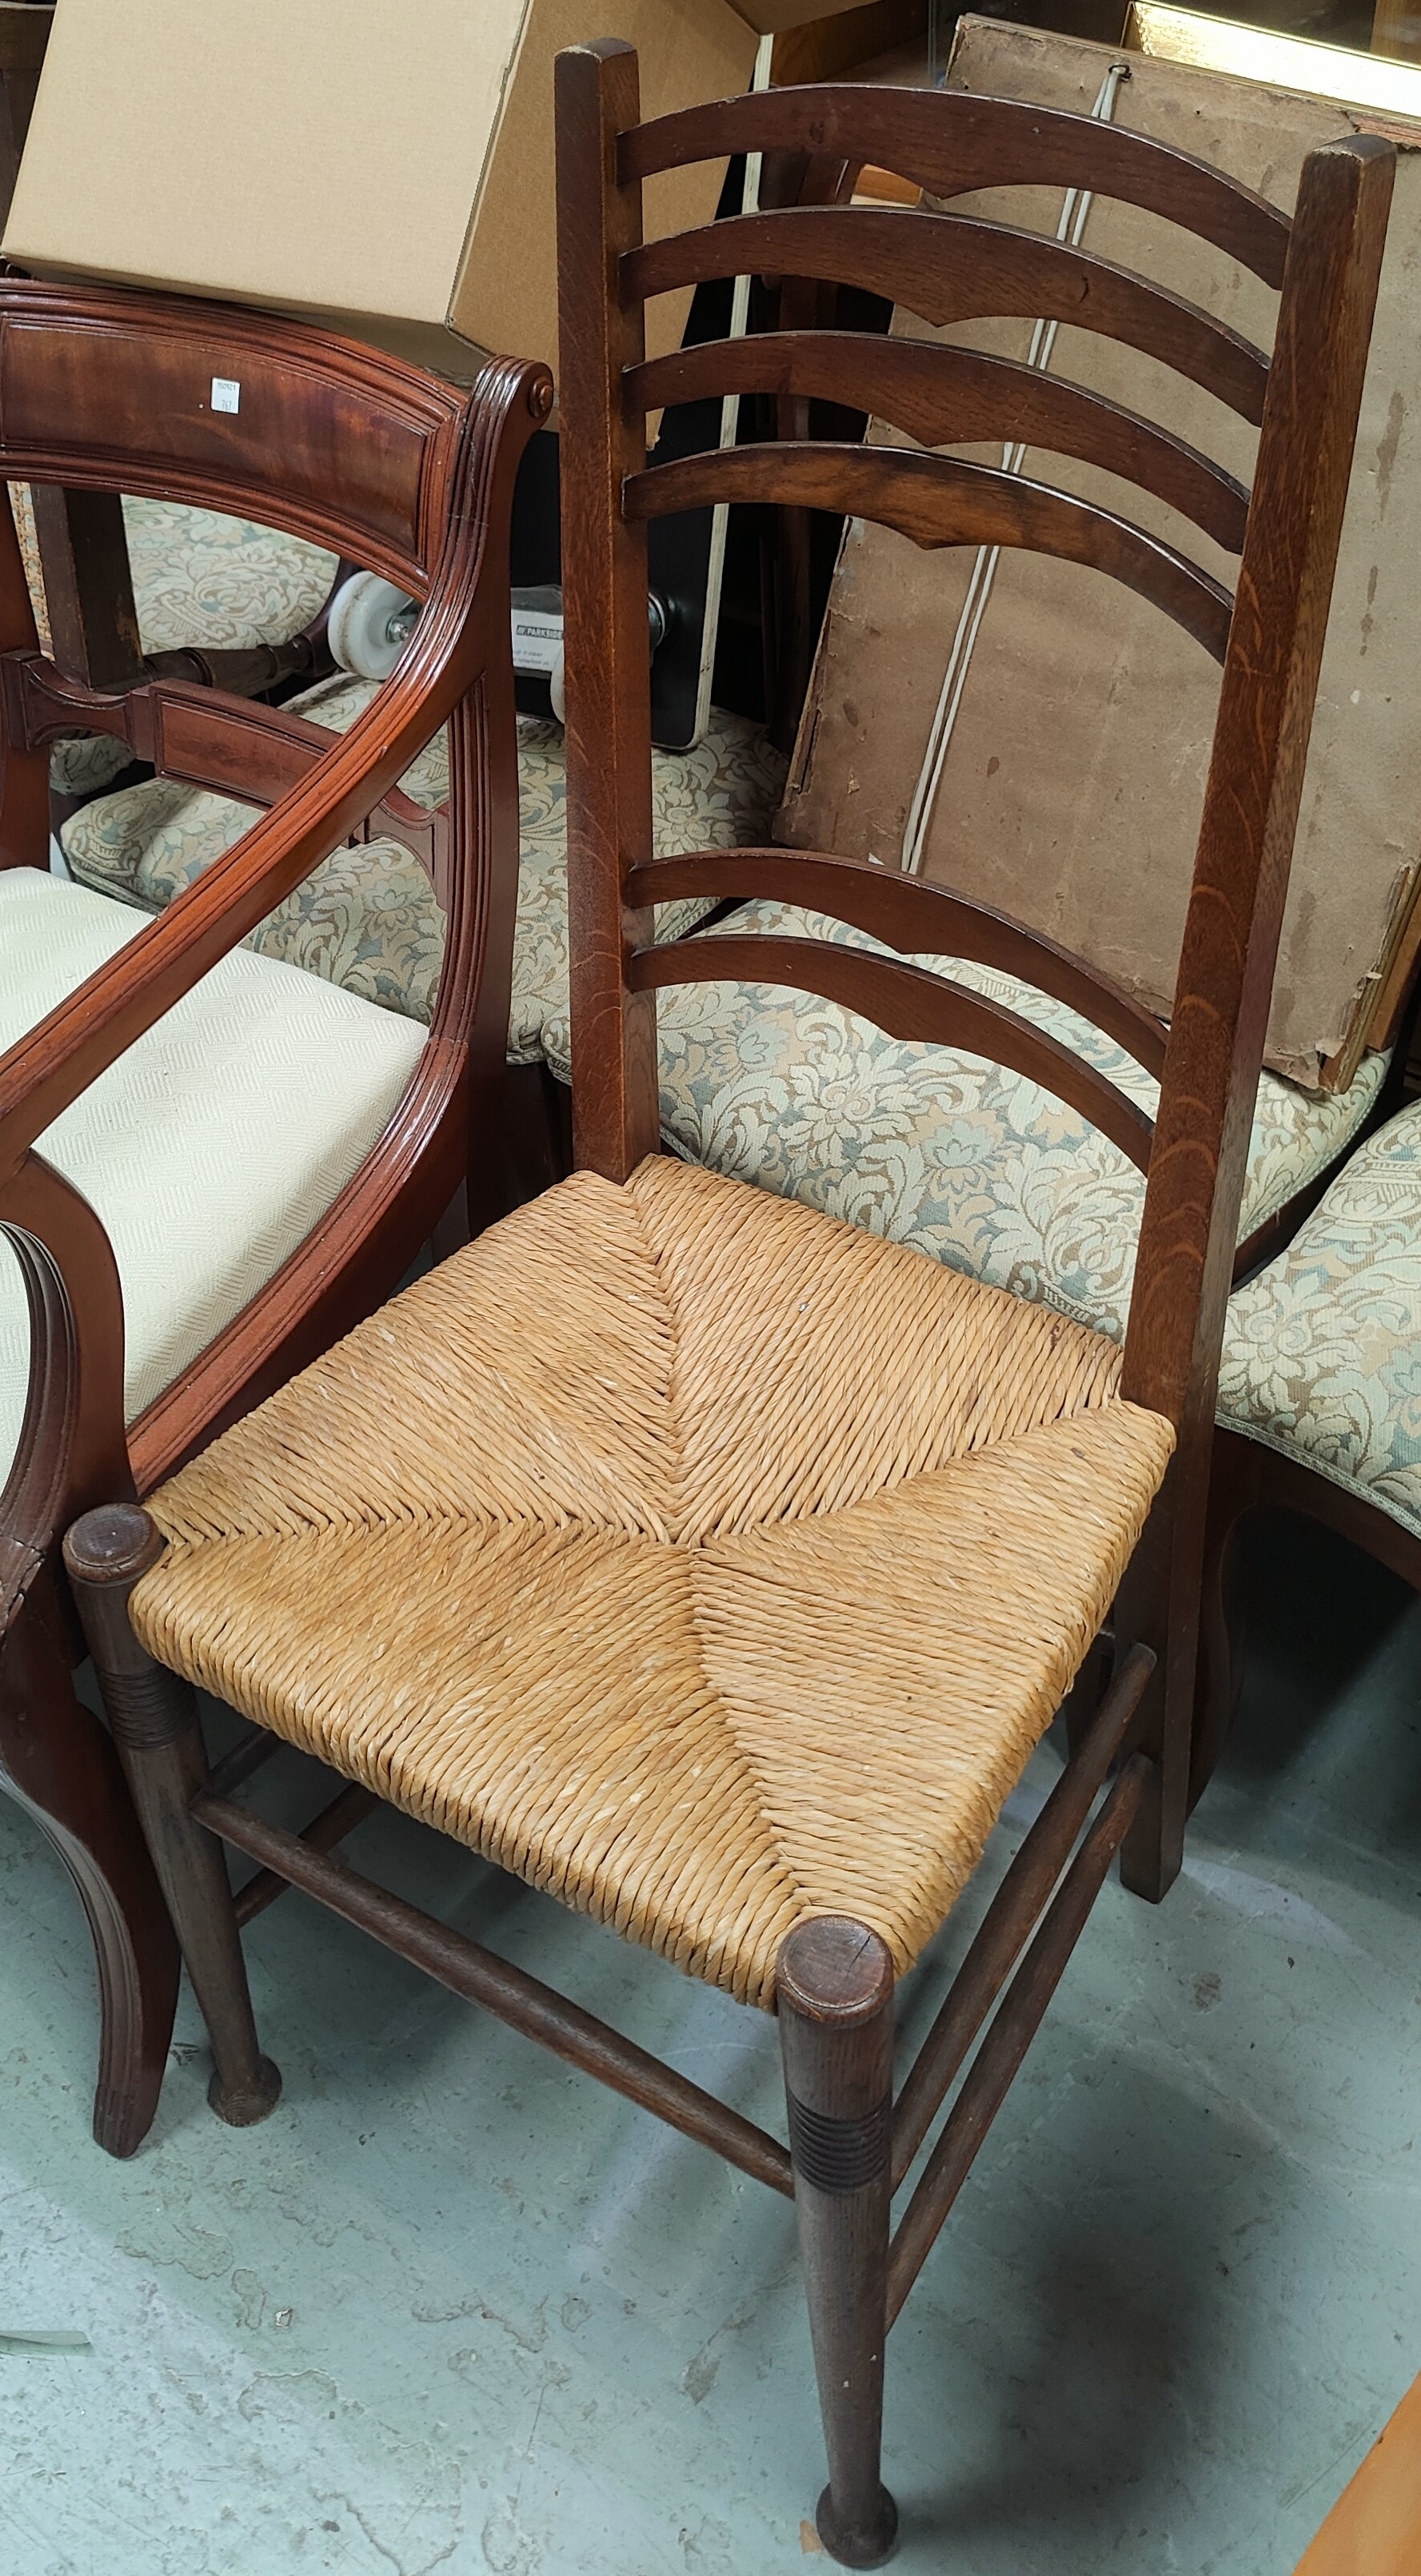 An Edwardian pair of Art Nouveau salon chairs with inlaid motif; an Arts & Crafts ladderback chair - Image 2 of 2